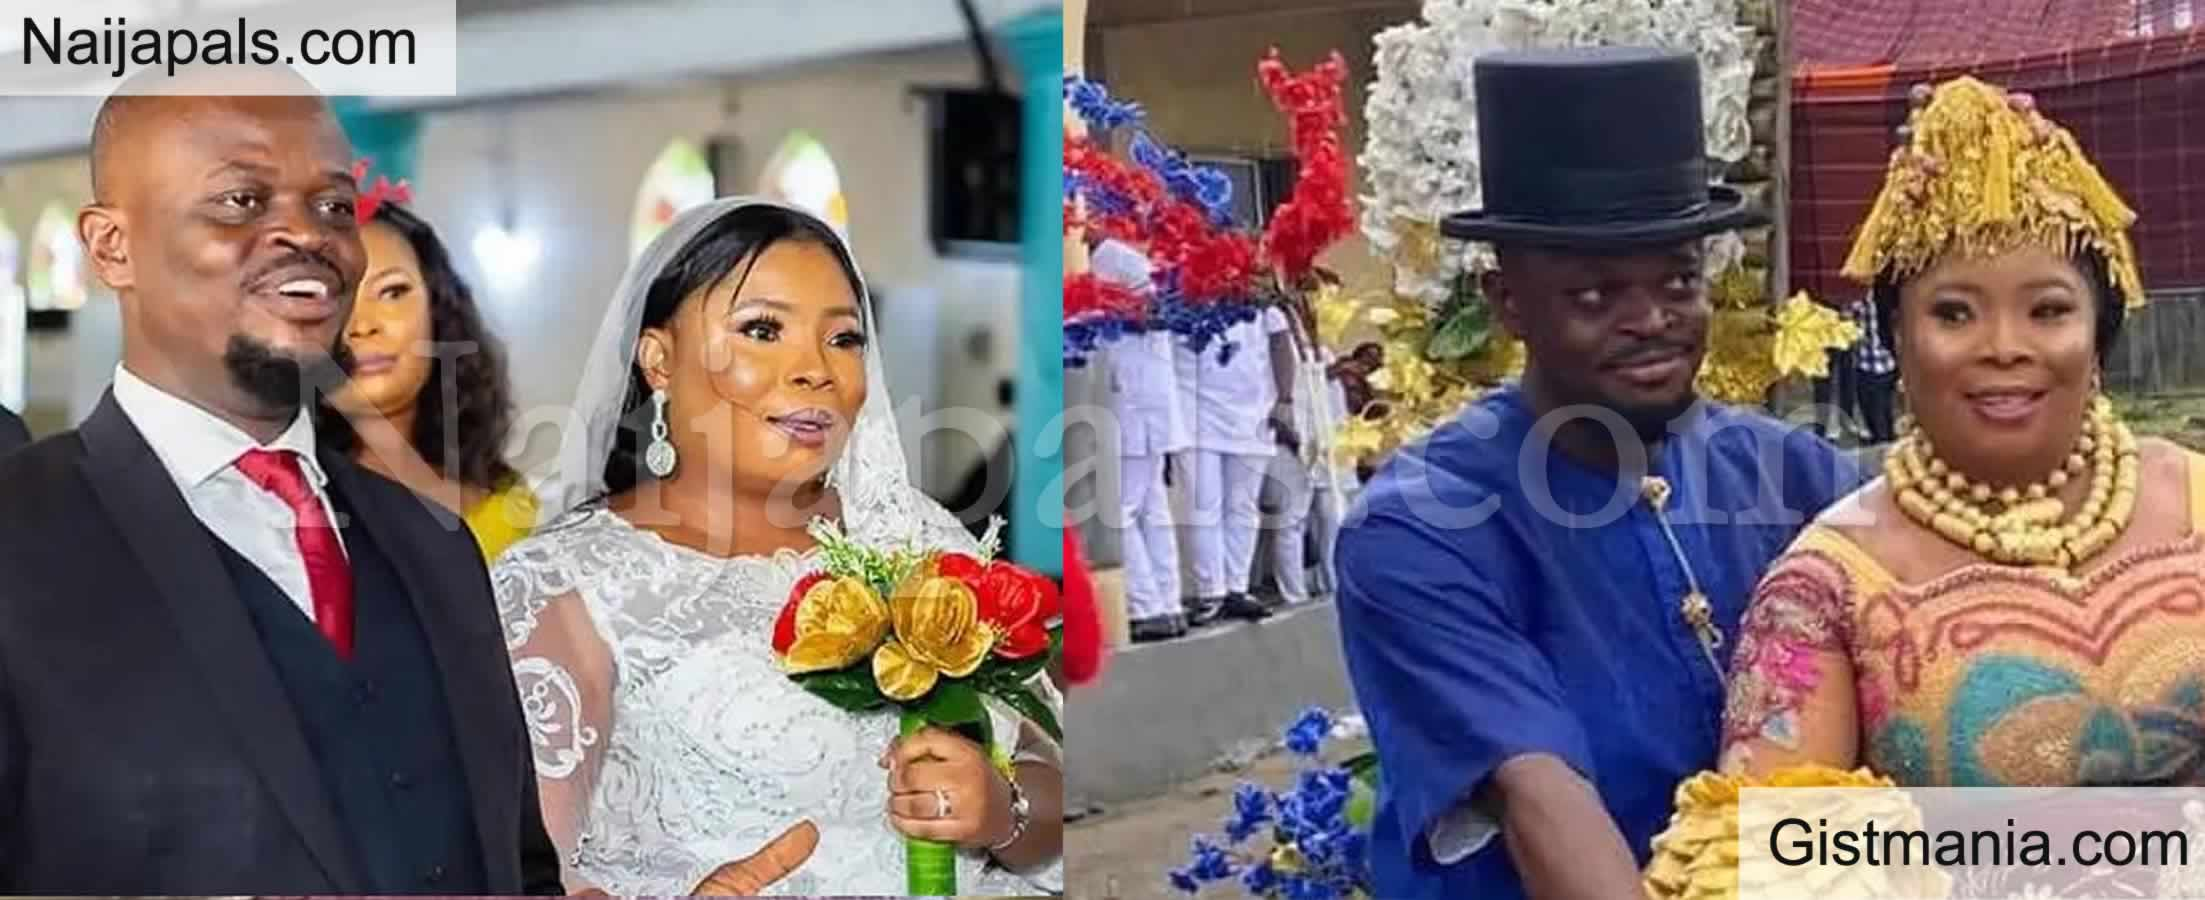 <img alt='.' class='lazyload' data-src='https://img.gistmania.com/emot/cry.gif' /> <b>Rivers State Media Aide Electrocuted to Death While on Call With Charging Phone 2 Months After Wedding</b>